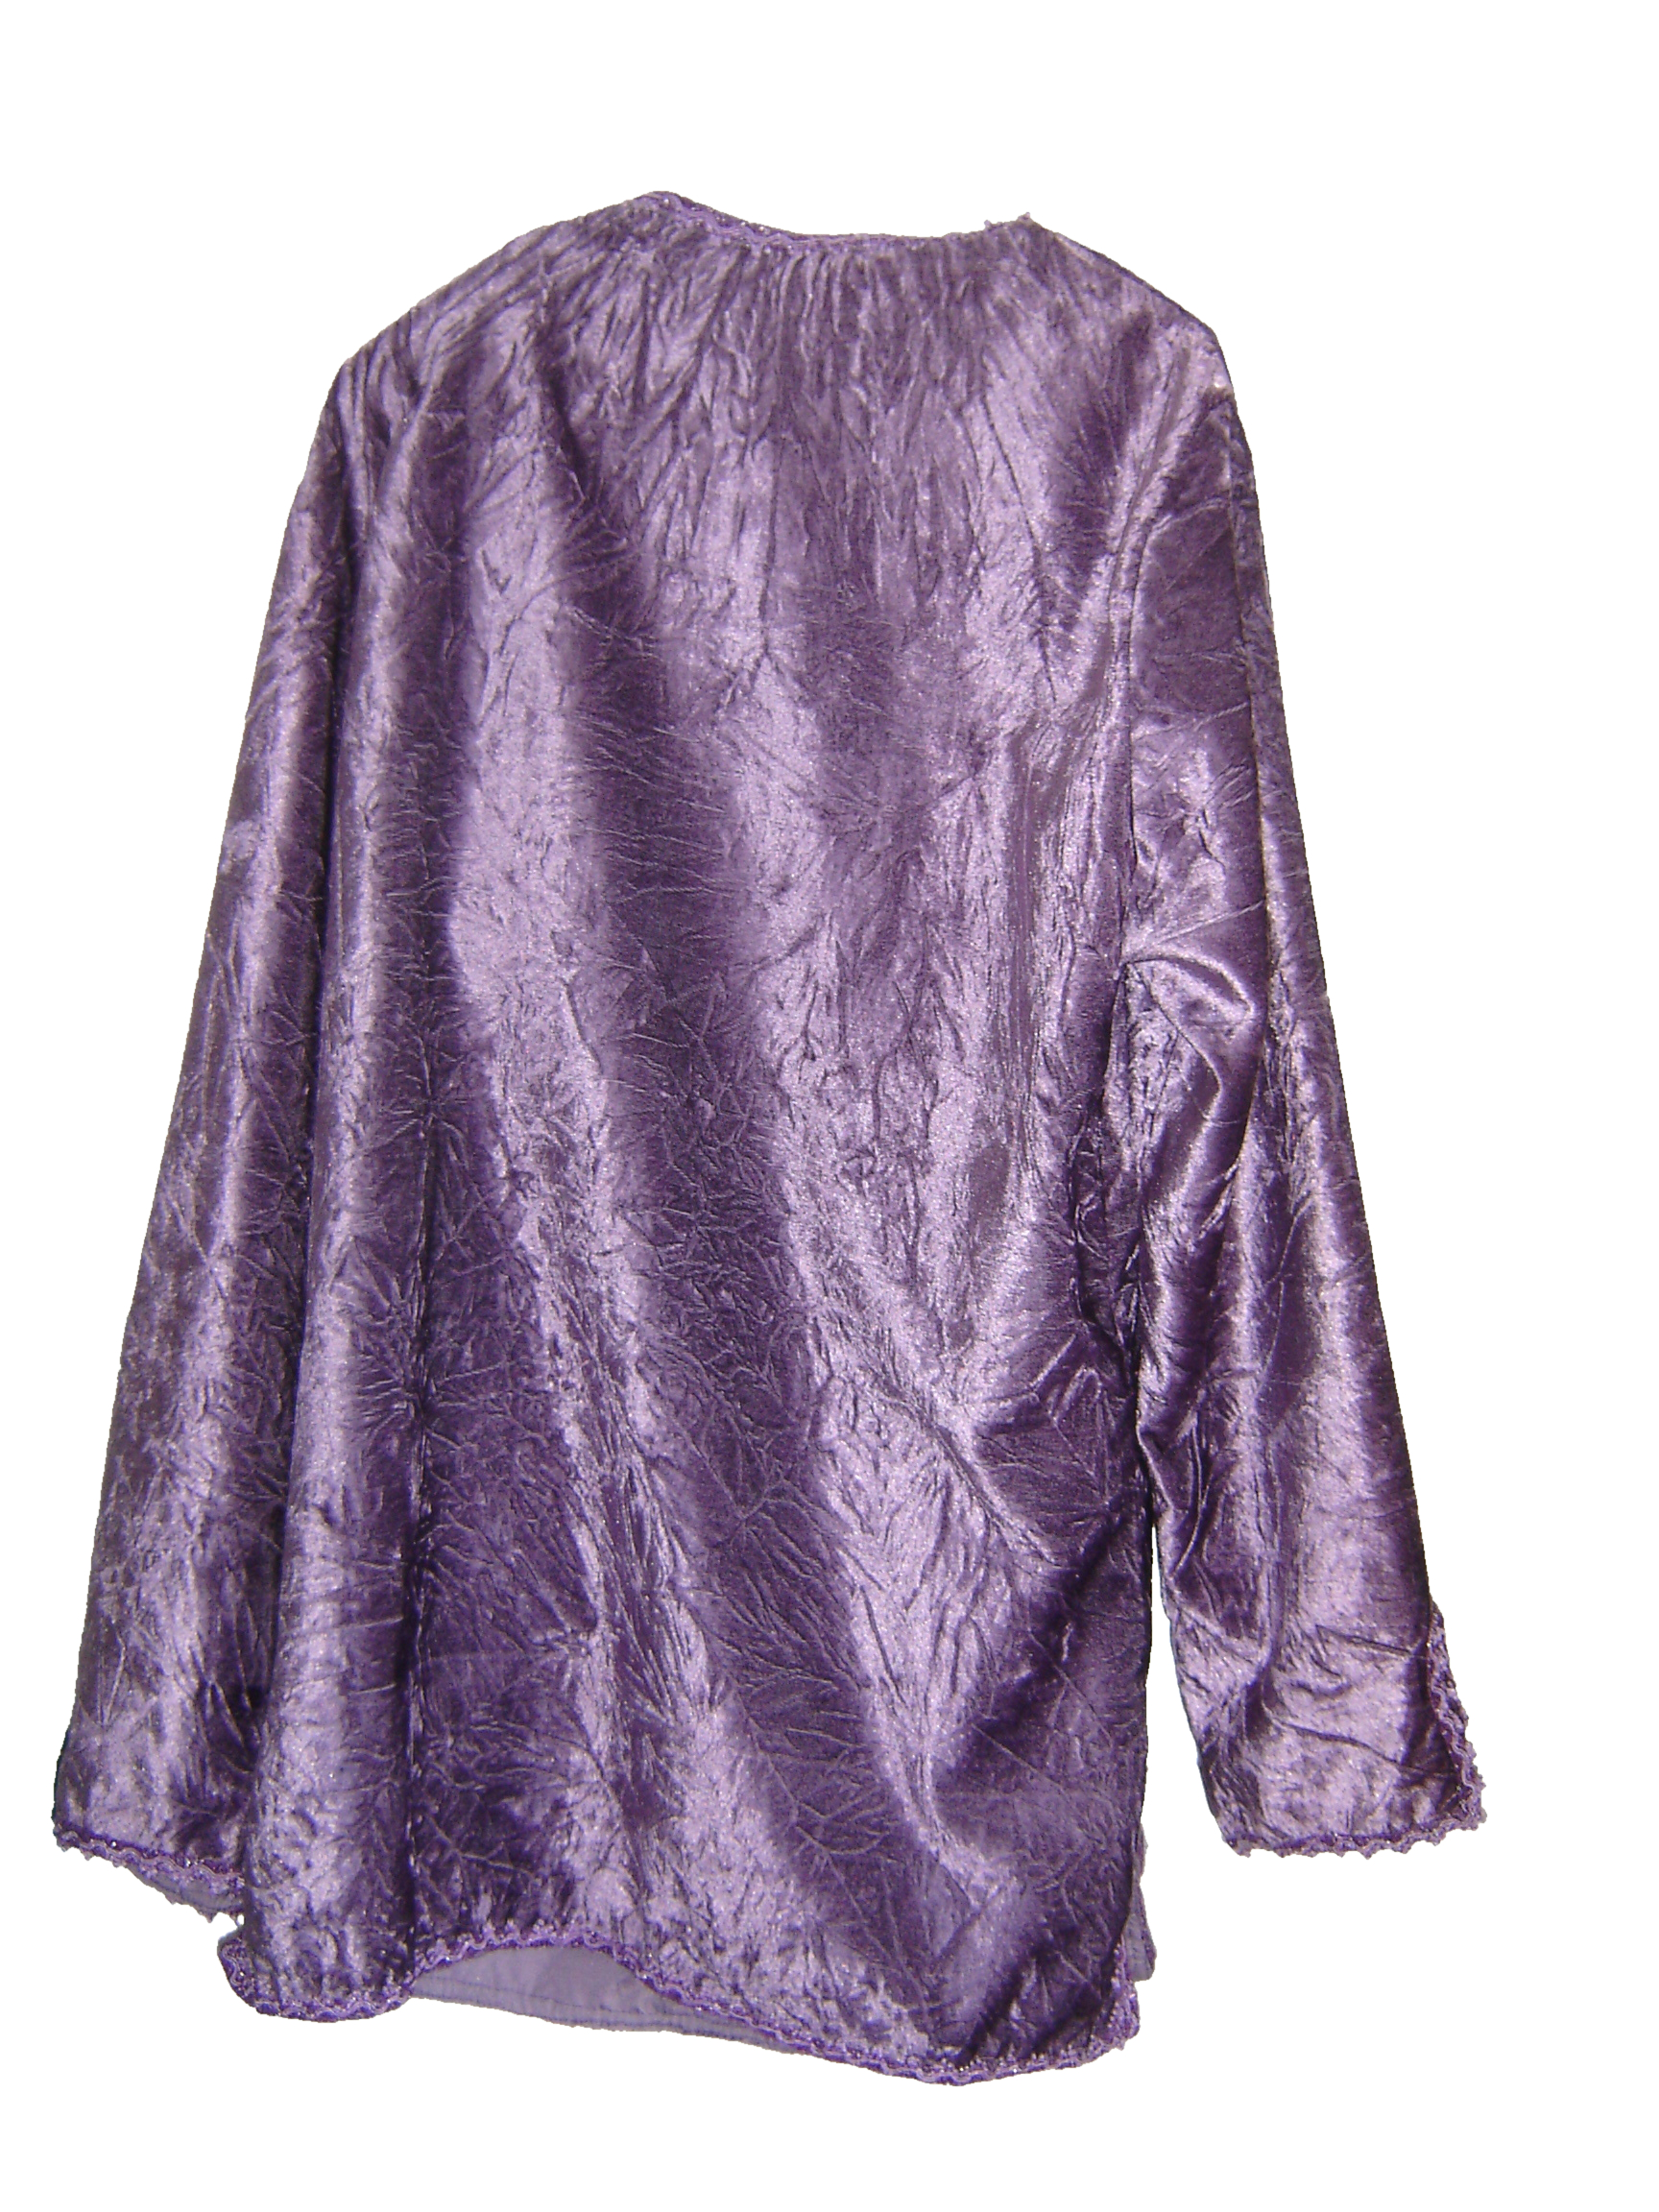 Rose-pink velvet Moroccan shirt (back view)